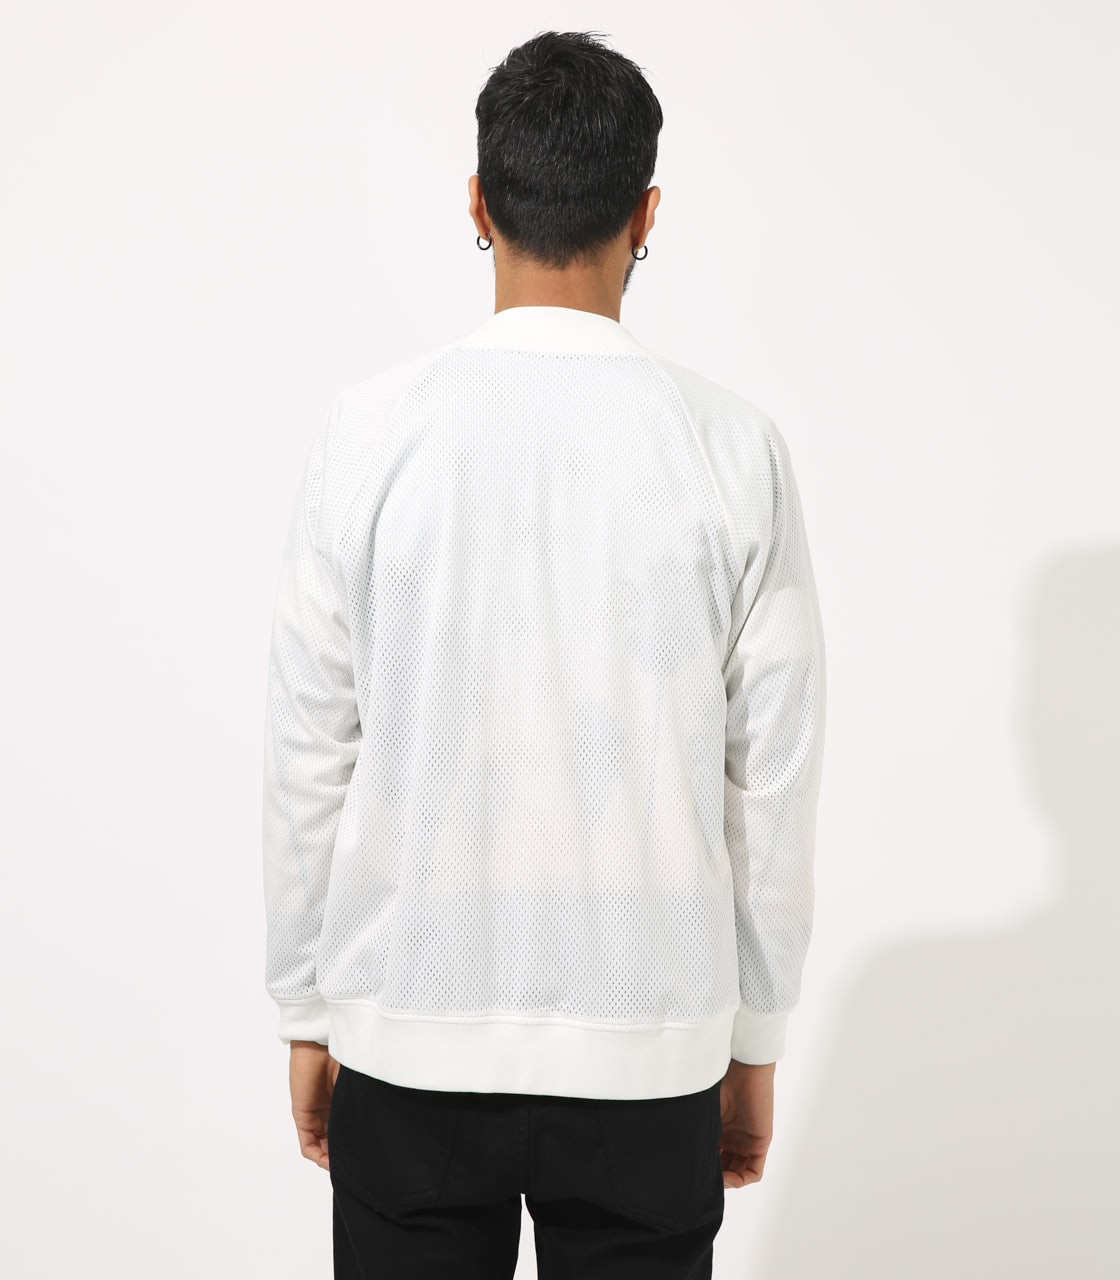 【AZUL BY MOUSSY】REVERSIBLE MESH BLOUSON 詳細画像 WHT 7